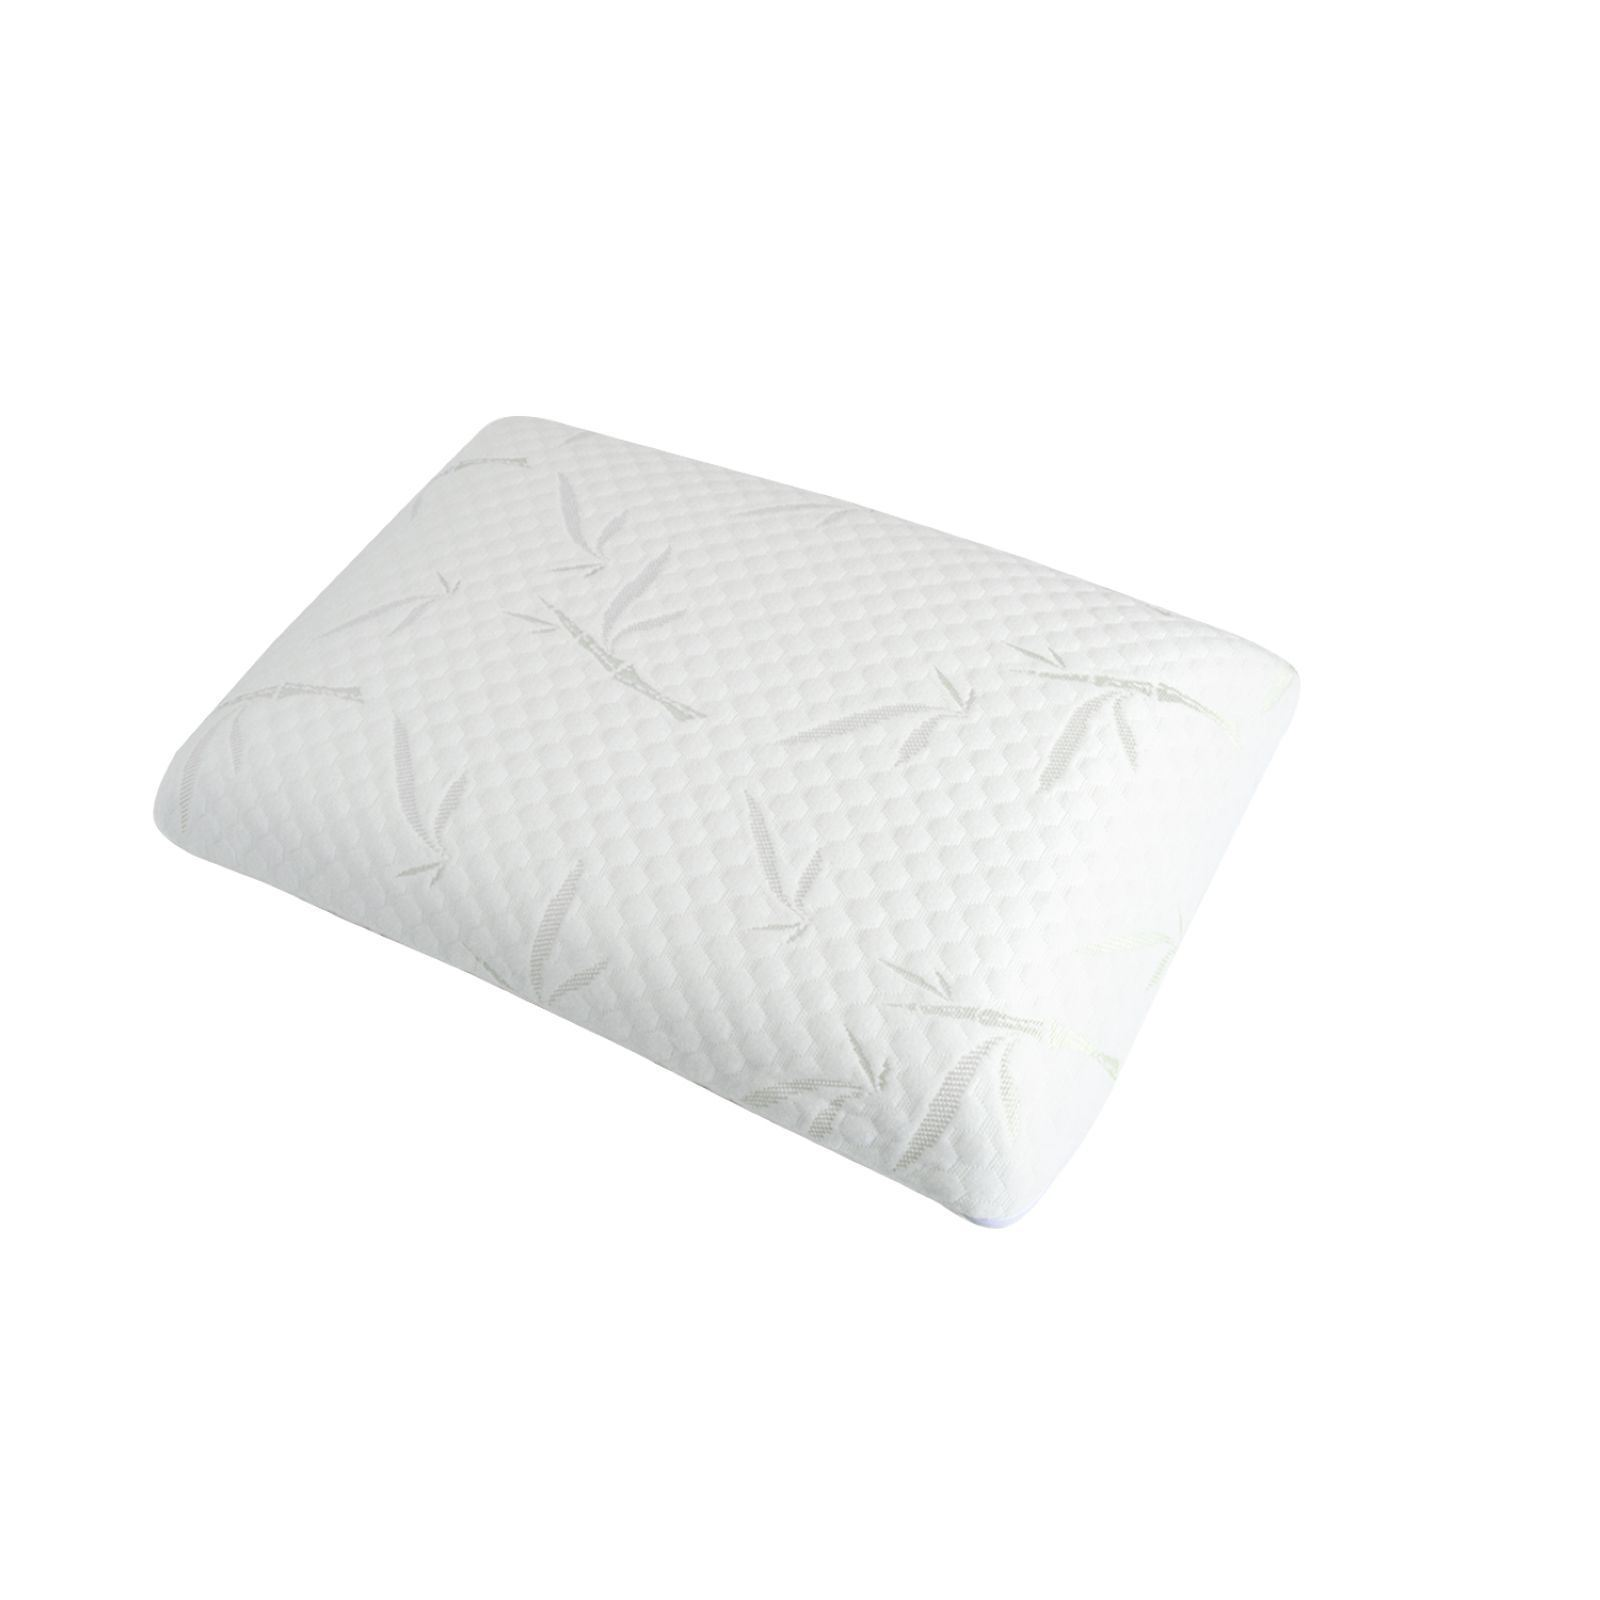 Olympe literie fran aise pack oreiller prot ge matelas for Protege couette